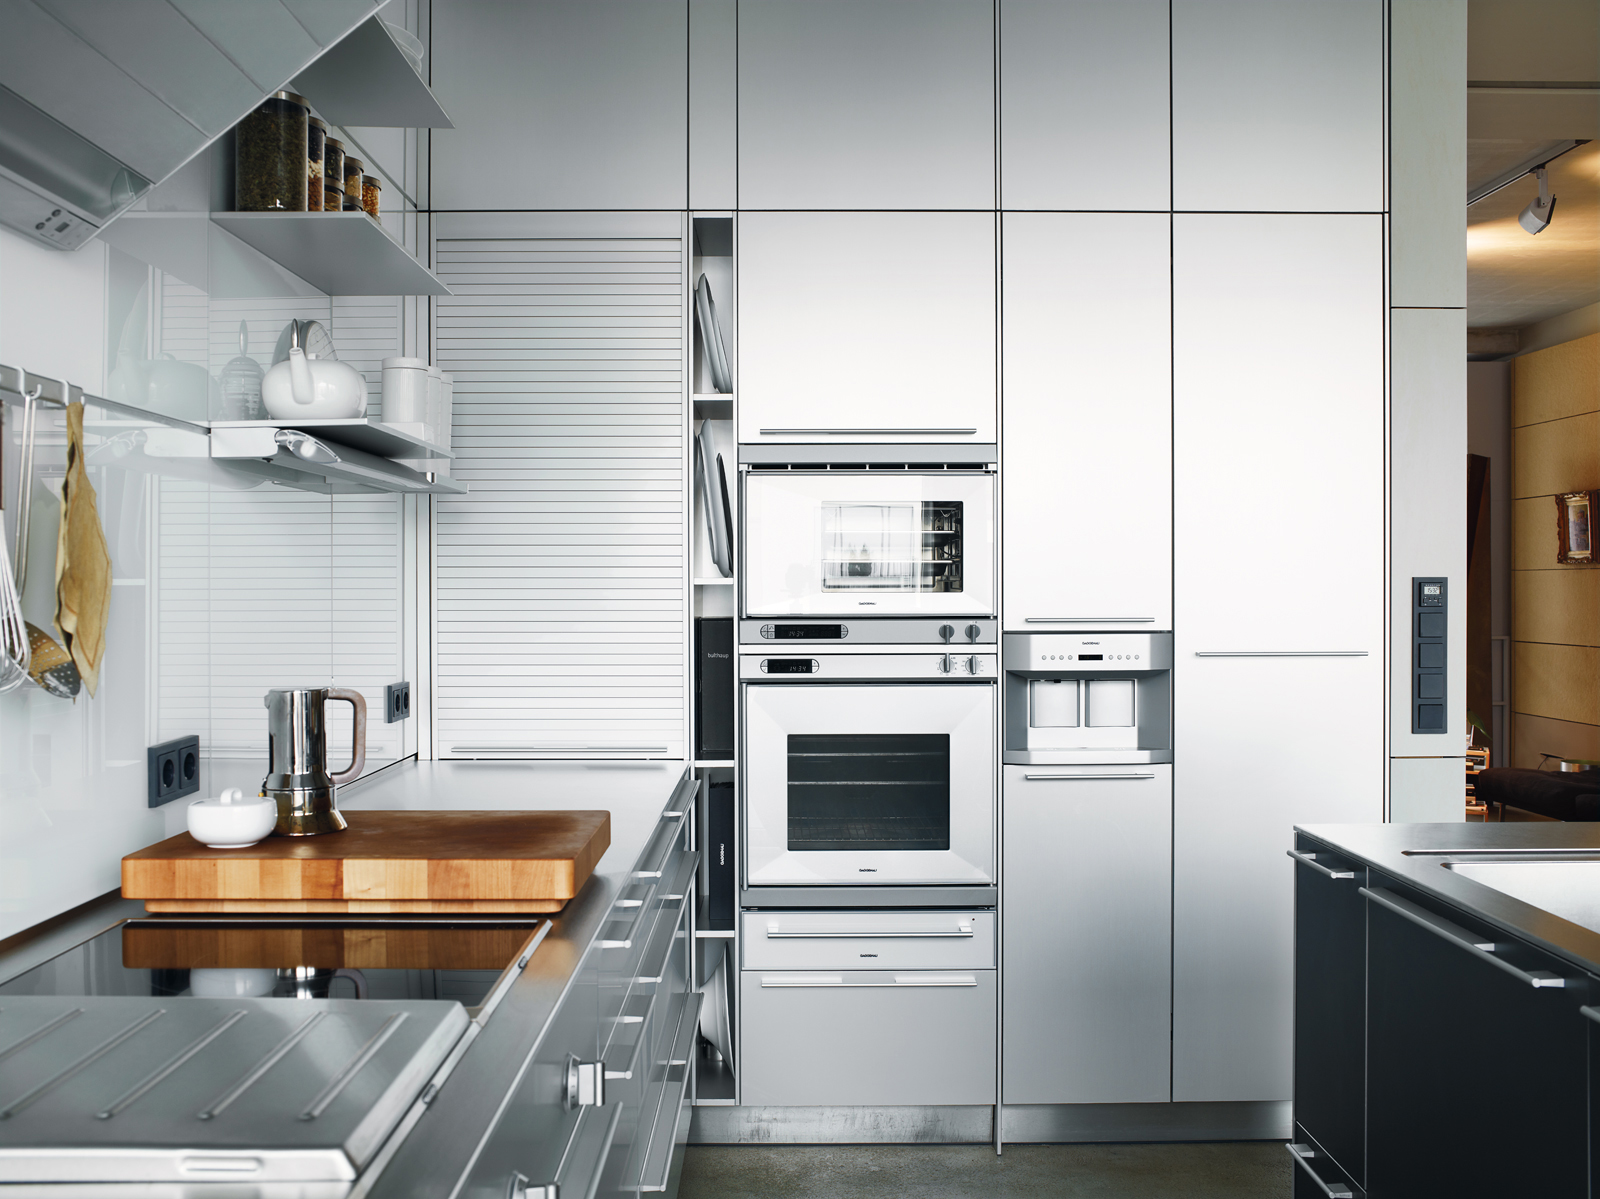 Stainless steel Bulthaup kitchen